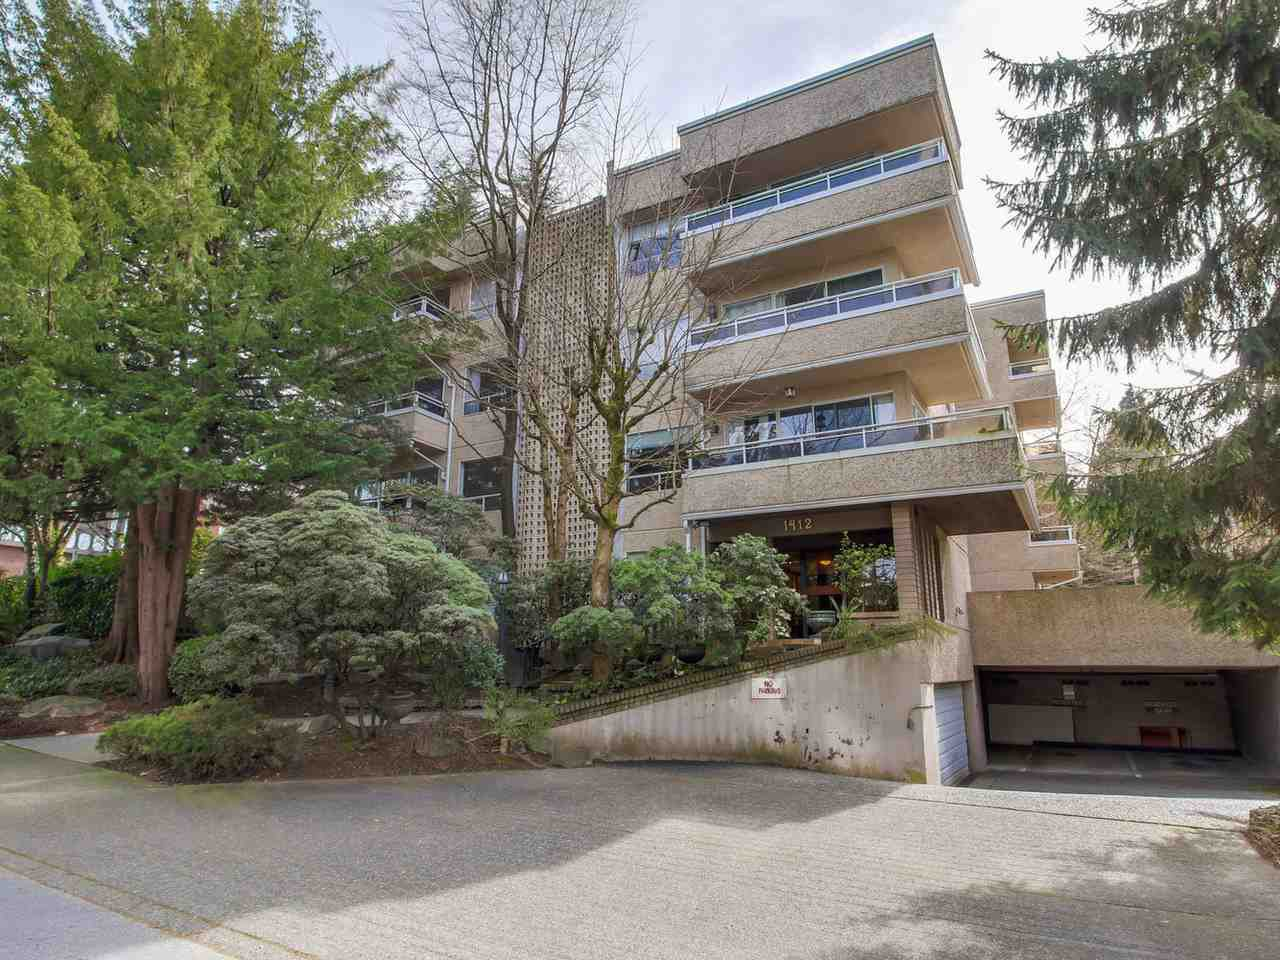 Main Photo: 103 1412 W 14TH Avenue in Vancouver: Fairview VW Condo for sale (Vancouver West)  : MLS®# R2048701